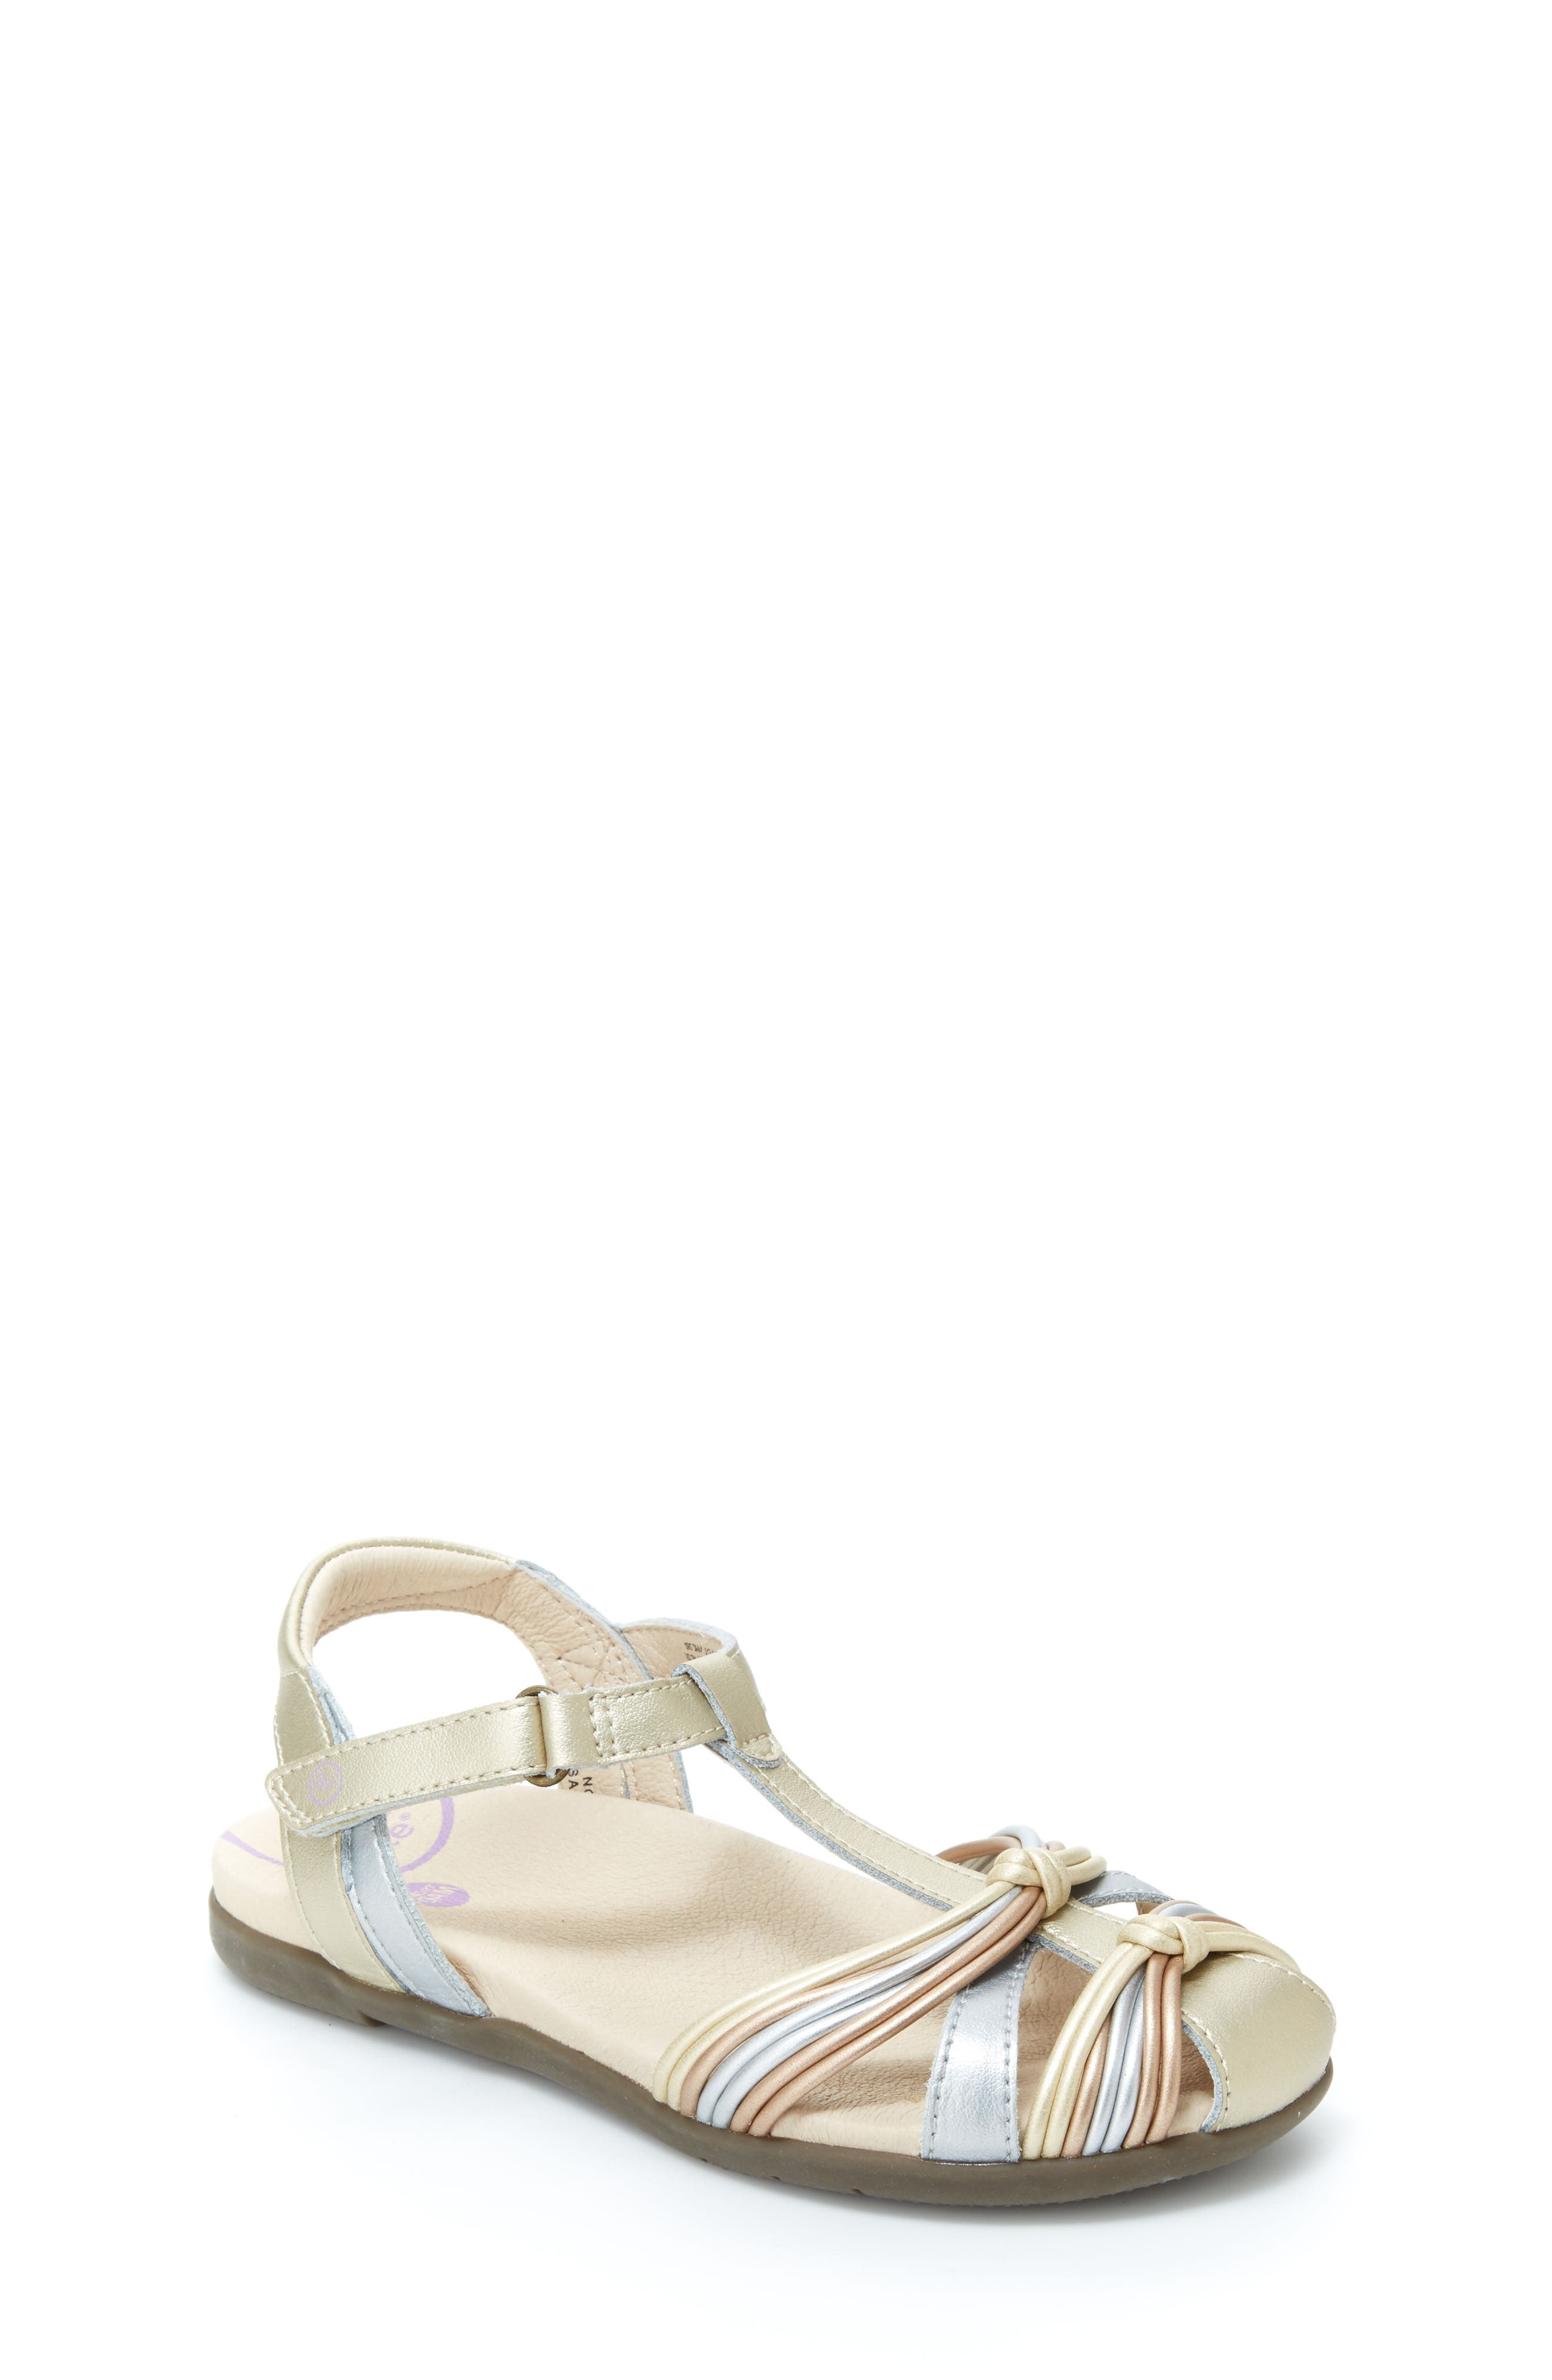 Dana T-Strap Sandal,                         Main,                         color, Metallic Multi